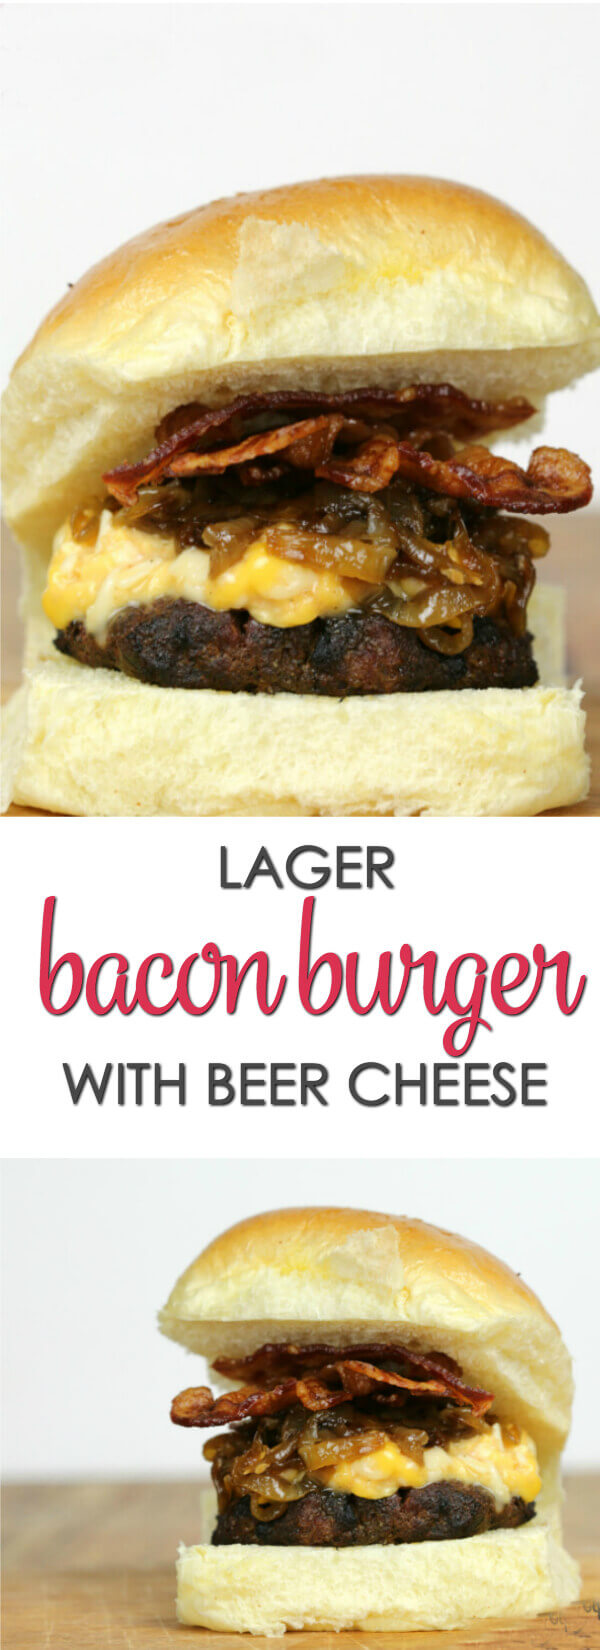 Lager Bacon Burger - this grilled burger recipe, topped with beer cheese and caramelized onions will have you begging for more